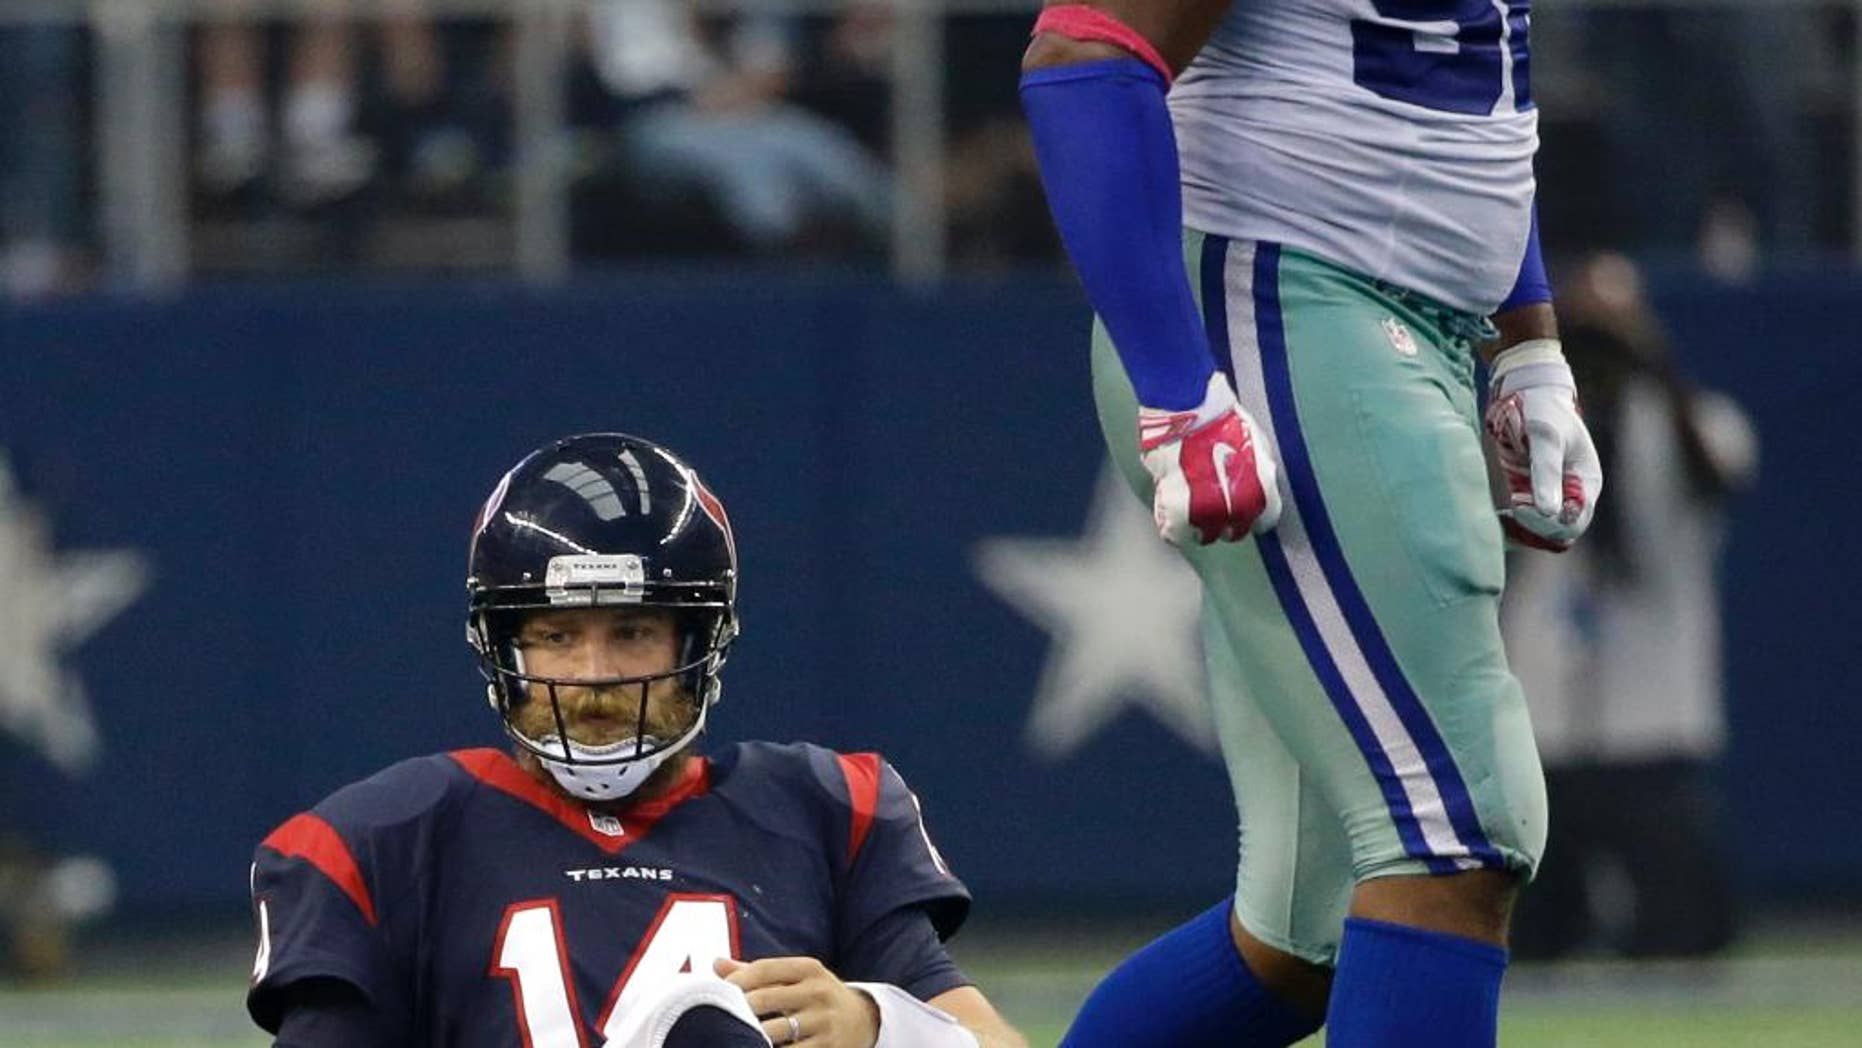 Houston Texans' Ryan Fitzpatrick (14) sits on the field as Dallas Cowboys defensive end Jeremy Mincey (92) walks pas during the second half of an NFL football game, Sunday, Oct. 5, 2014, in Arlington, Texas. The Cowboys won in overtime 20-17. (AP Photo/Tim Sharp)